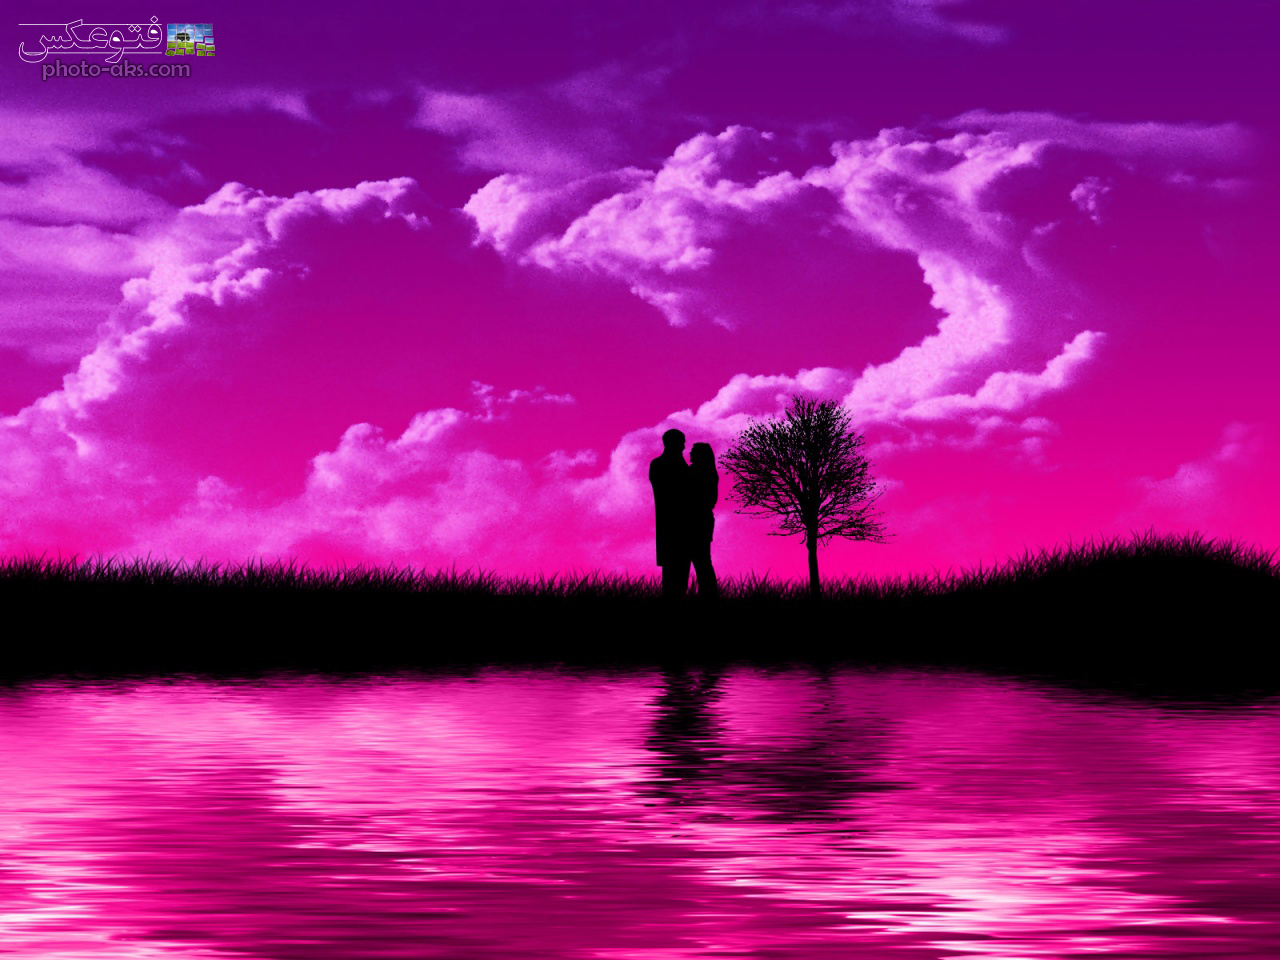 Pink Love Wallpaper: Romantic Love Hd Wallpapers Bos Hd Wallpapers